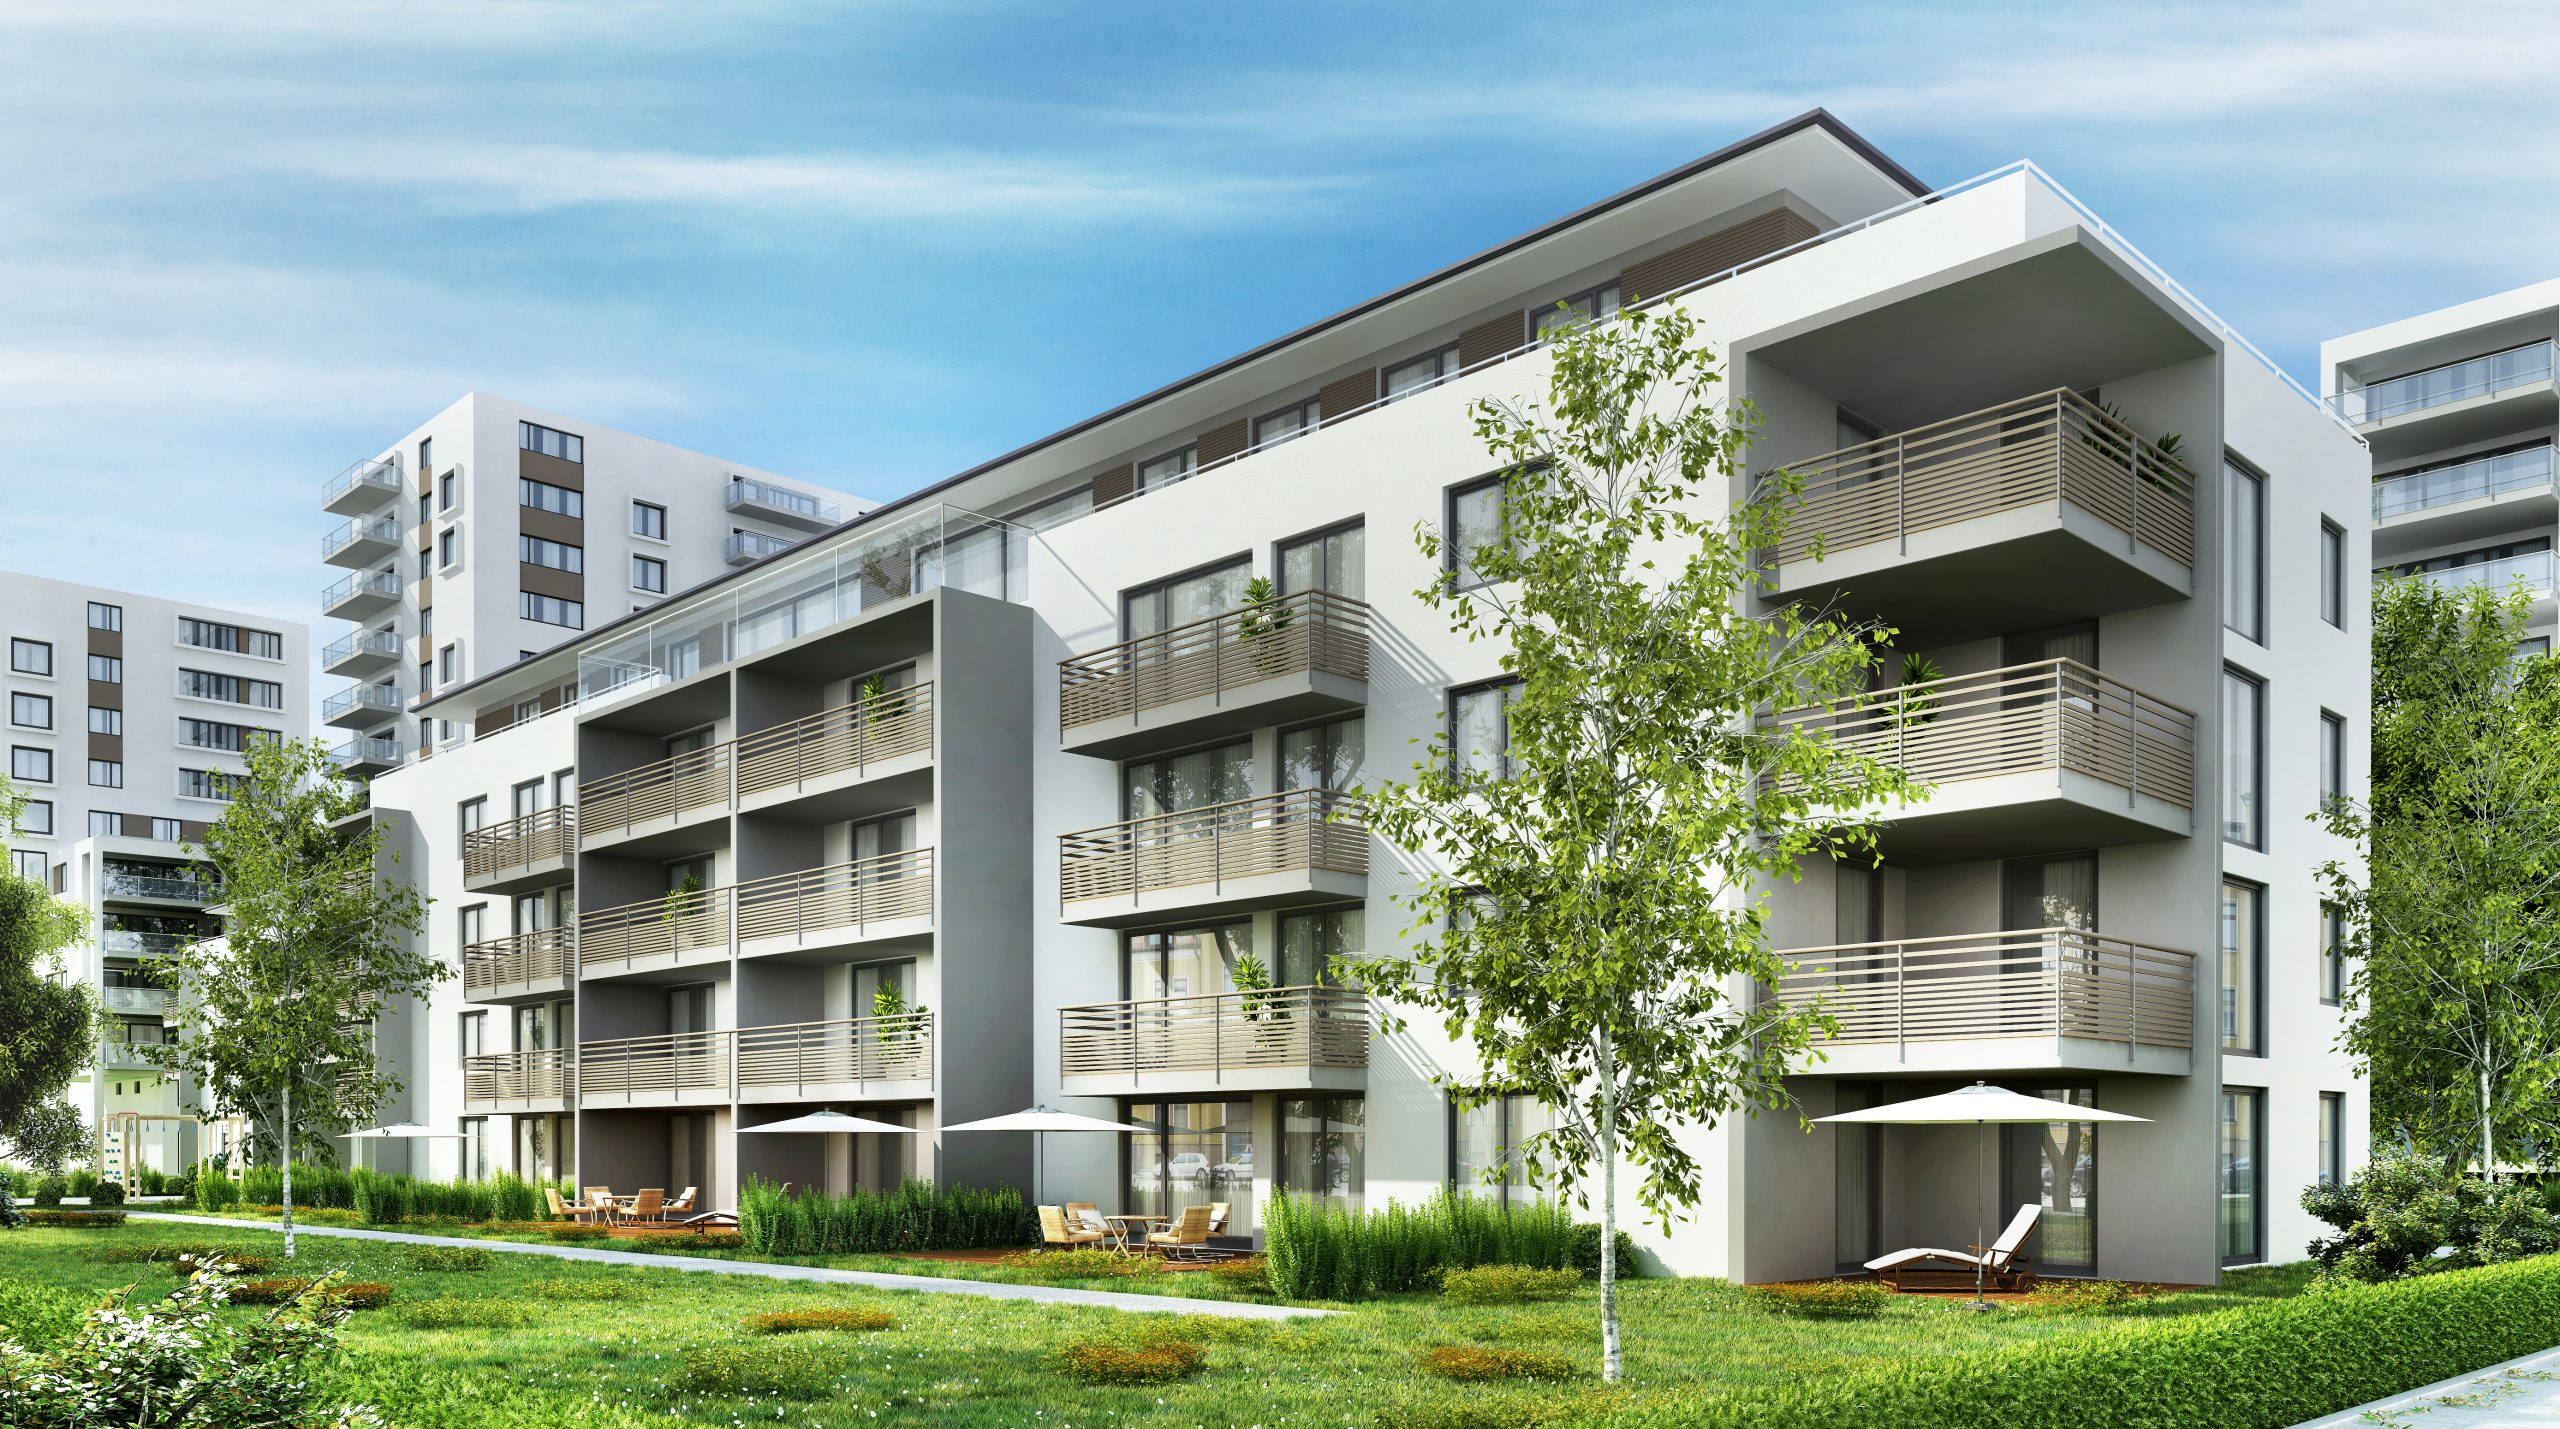 You're reading about six ways to invest in apartment buildings by Passive Income, MD. Pictured here is a modern apartment building, one example of a multifamily property.